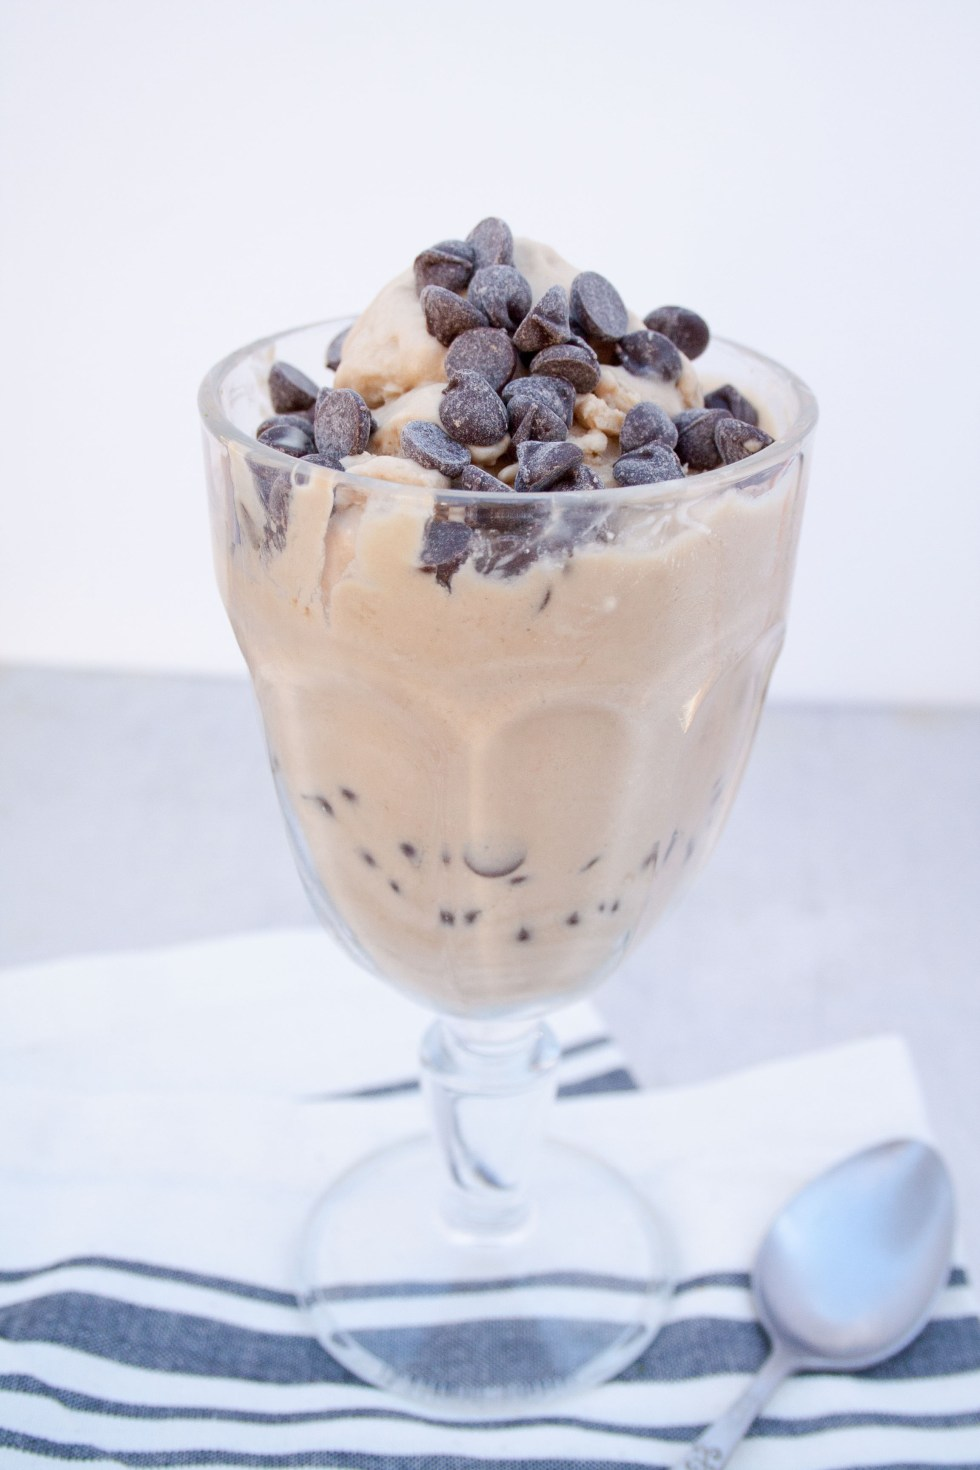 Vegan White Russian Ice Cream (gluten free) - This creamy, rich vegan ice cream is perfect for Valentine's Day or date night.